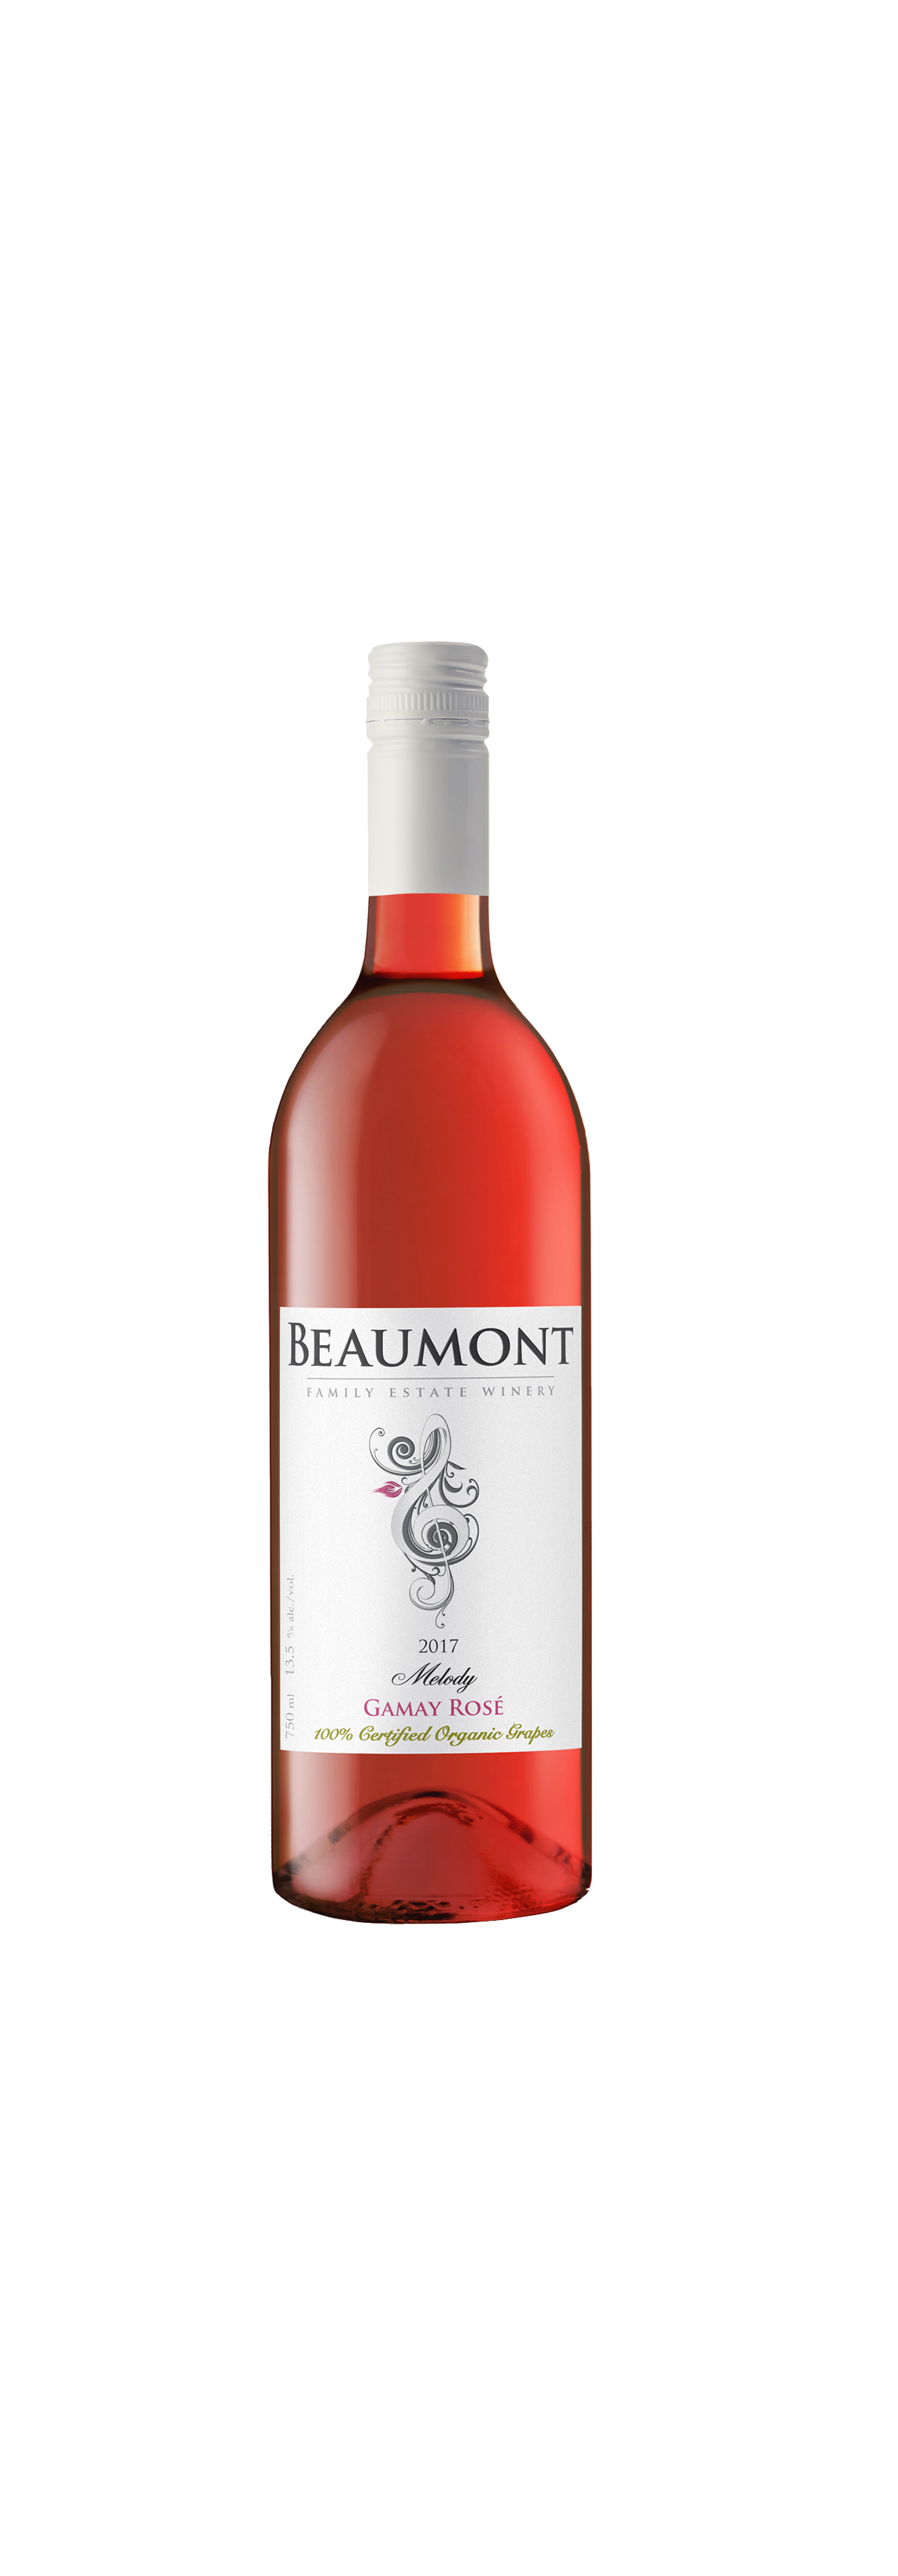 'Melody' Gamay Rose 2017  Beaumont Family Estate Winery